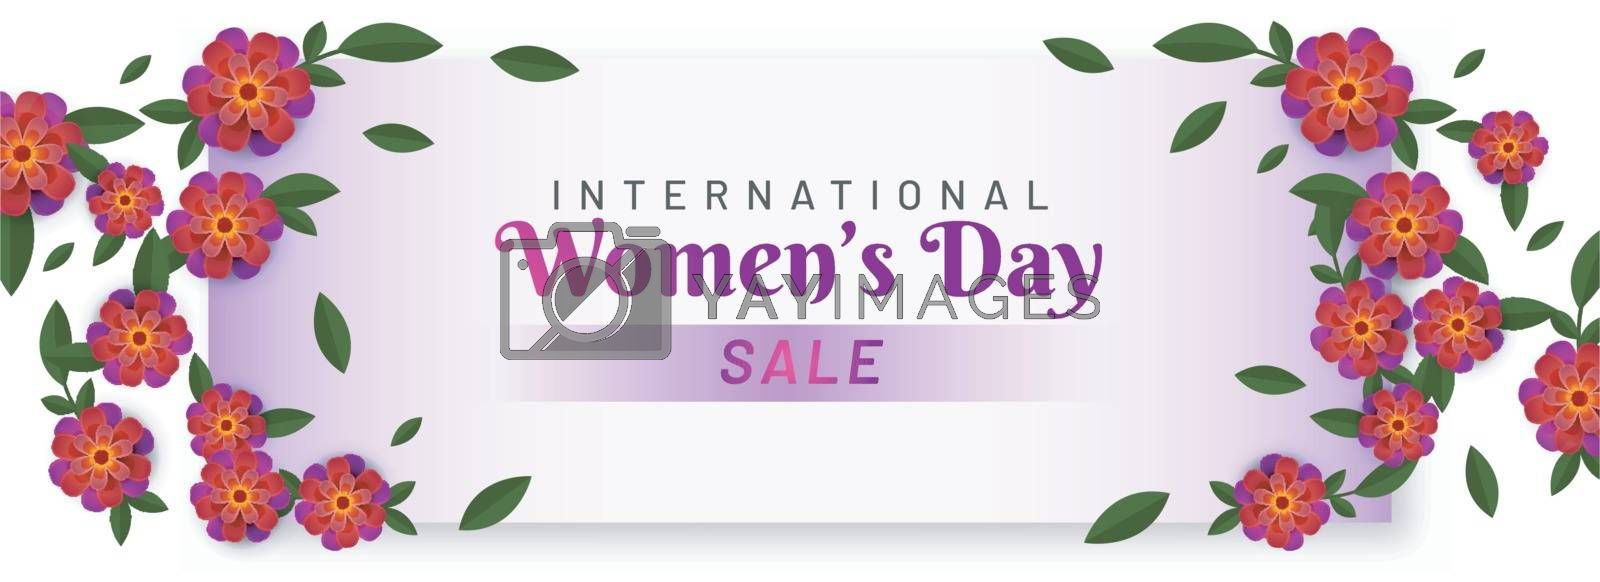 International Women's Day sale header or banner design decorated with beautiful paper cut flowers.